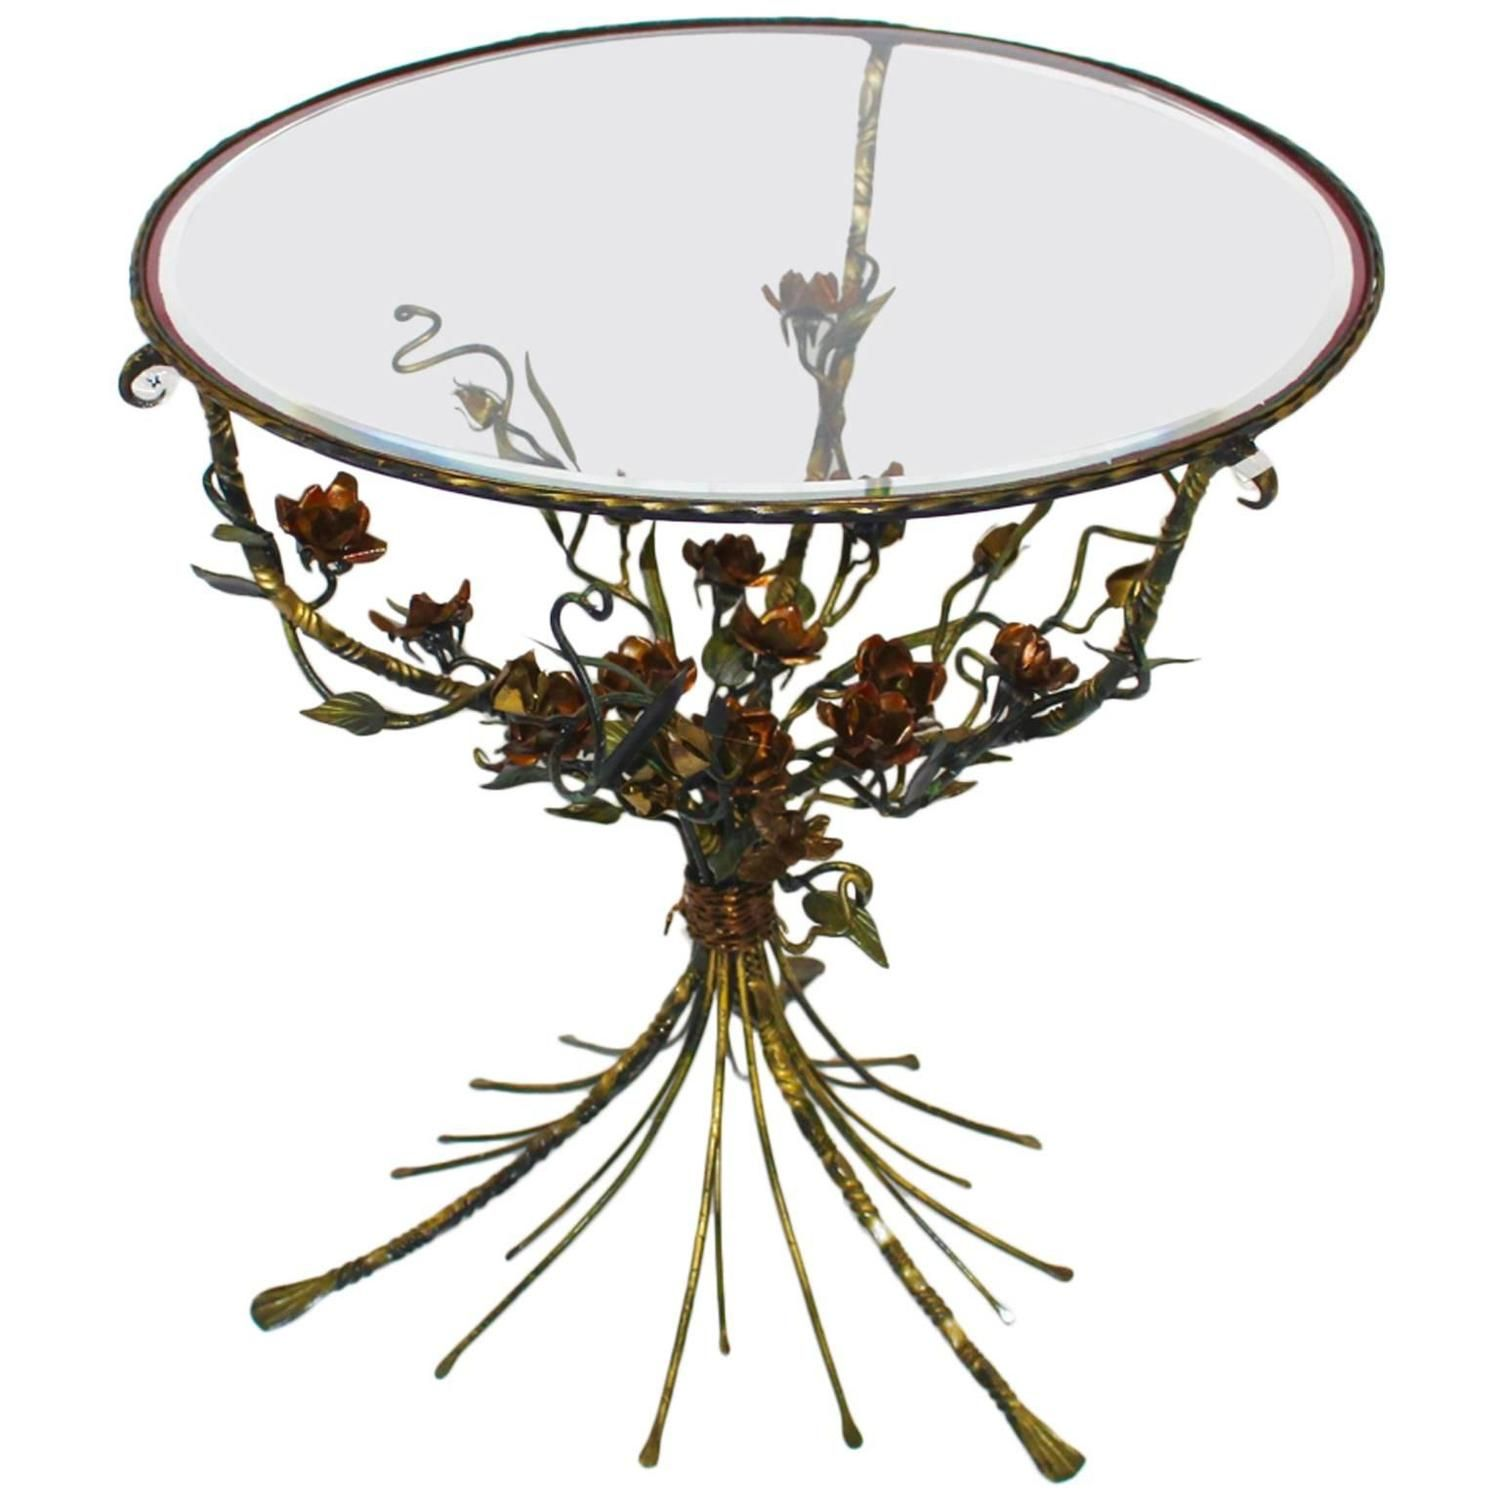 Hollywood Regency Style Metal Flower Coffee Table, 1950s | From a unique collection of antique and modern coffee and cocktail tables at https://www.1stdibs.com/furniture/tables/coffee-tables-cocktail-tables/